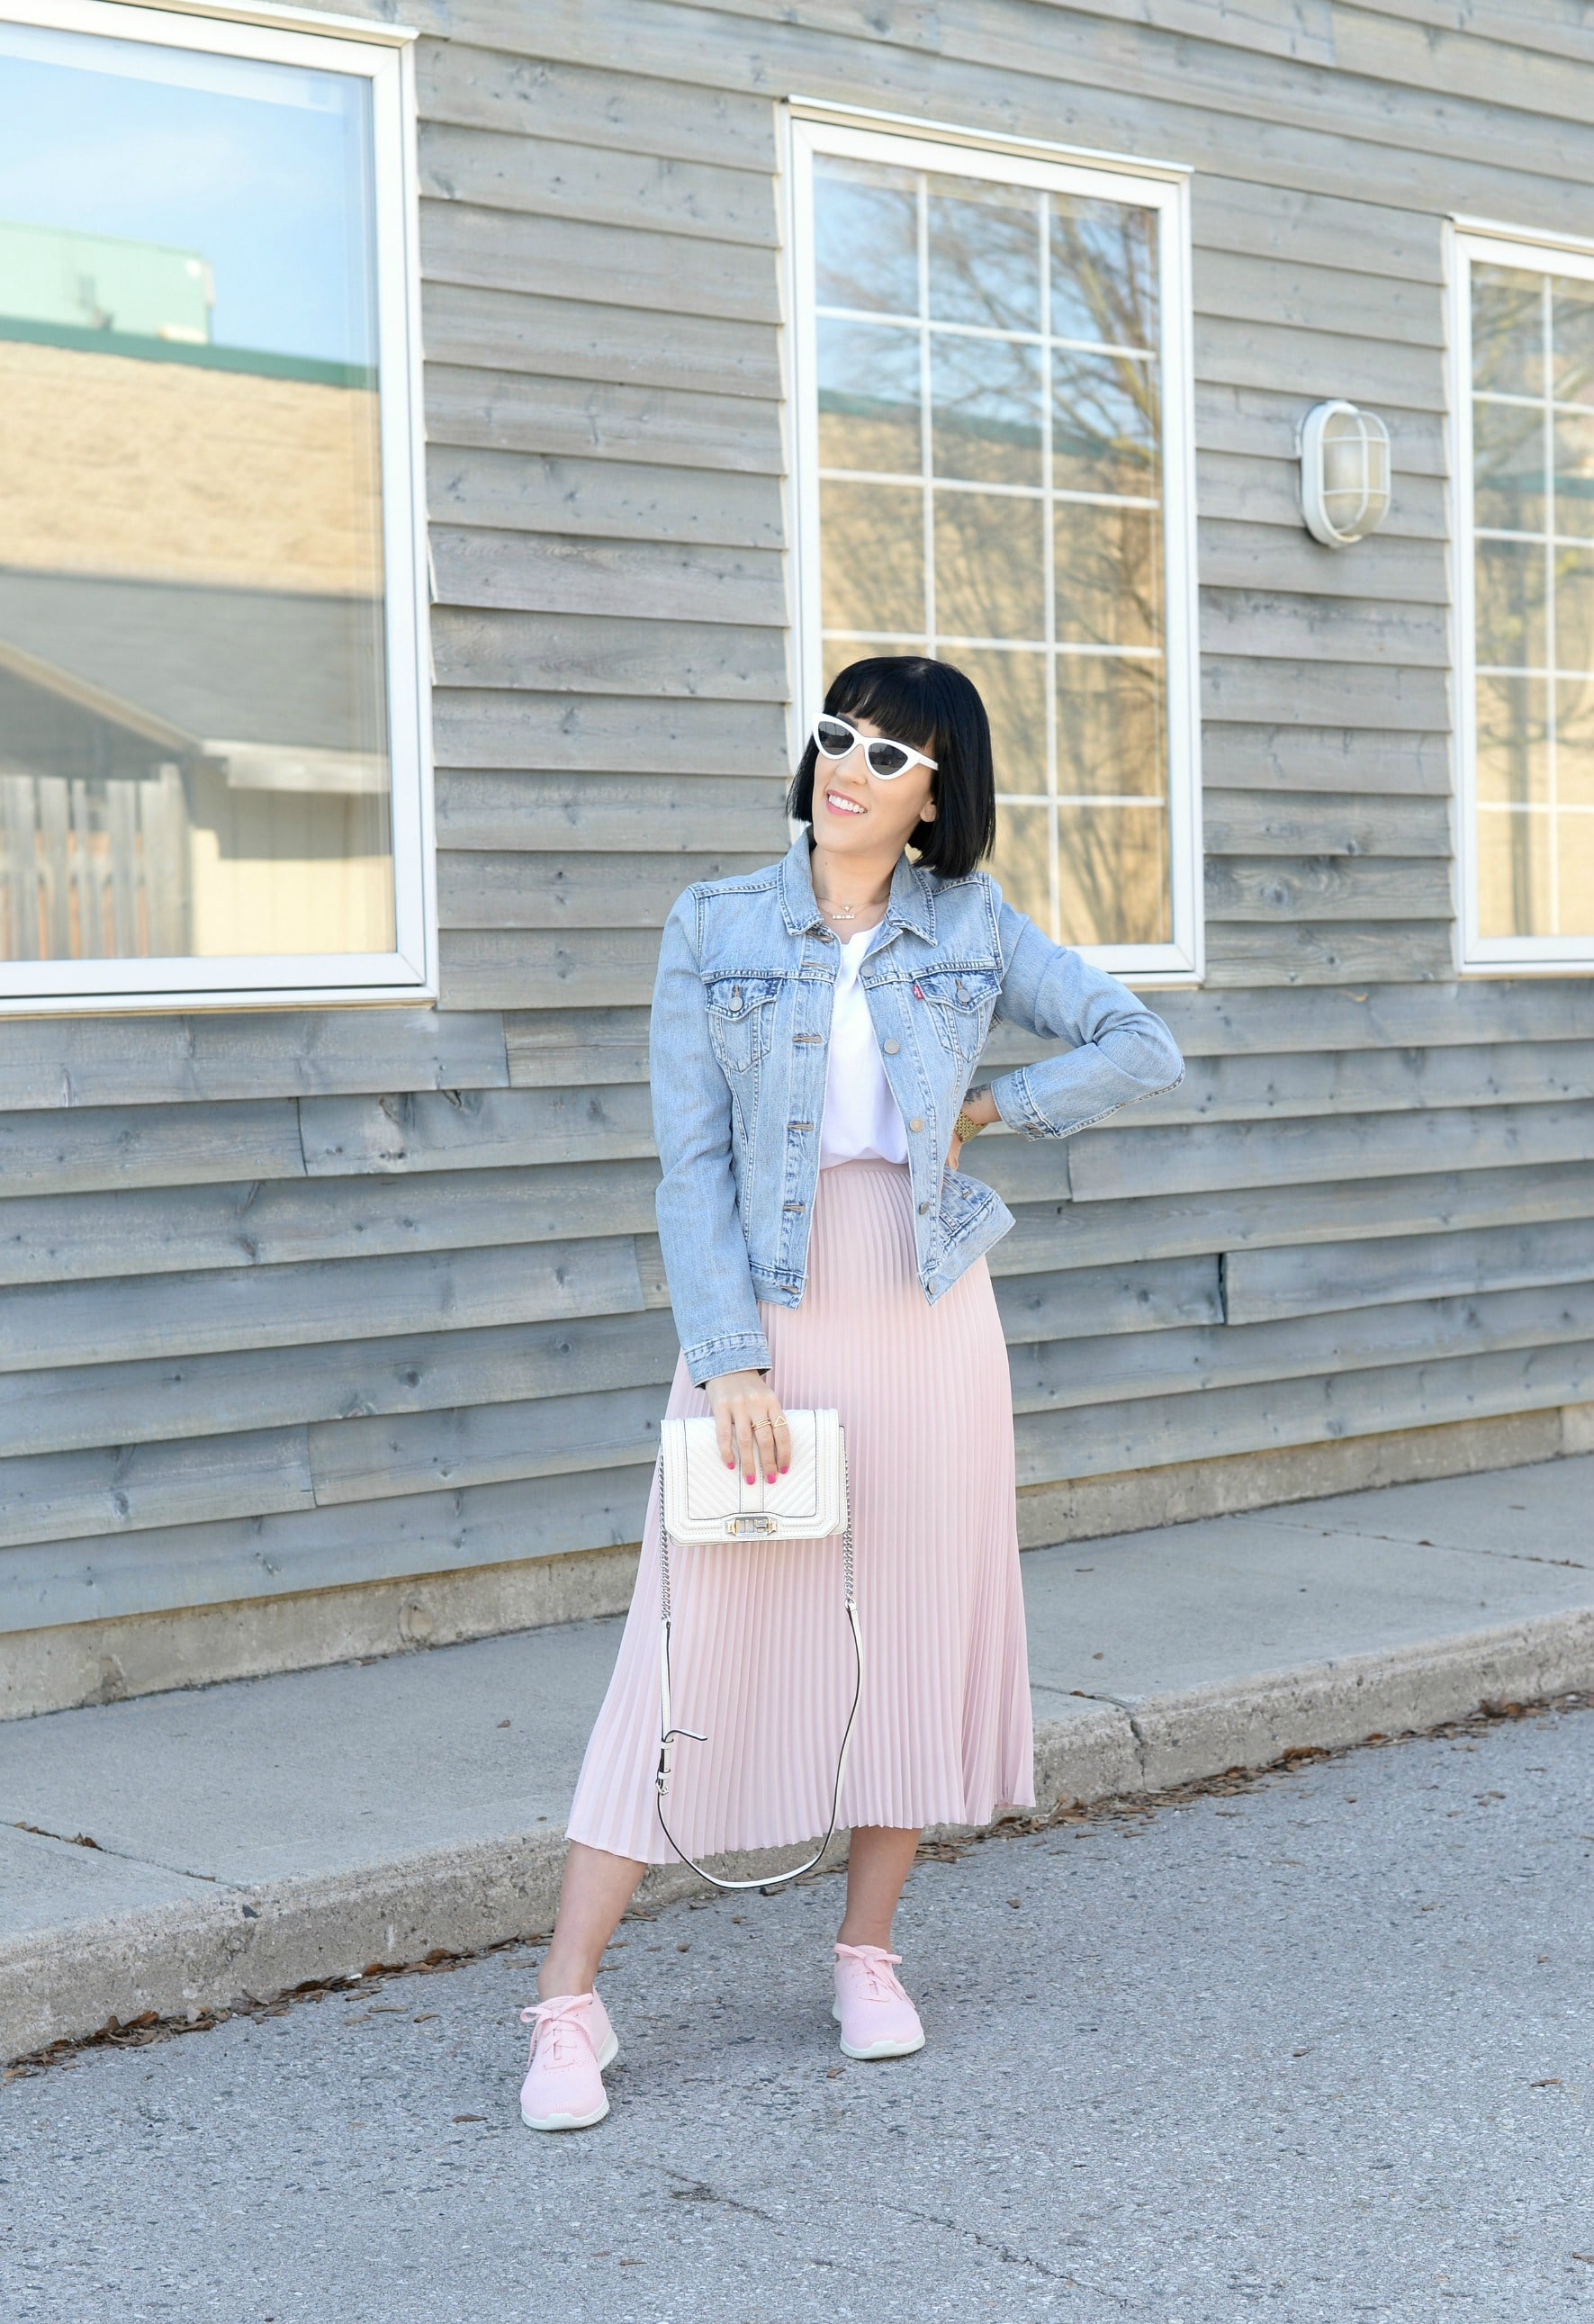 Skechers Wave-Lite, skechers, pink sneakers, pink kicks, pink skirt, pleated skirt, spring running shoes, Levis denim jacket, levis jean jacket, white purse, Rebecca minkoff purse, white handbag, style blogger, Canadian fashion blogger